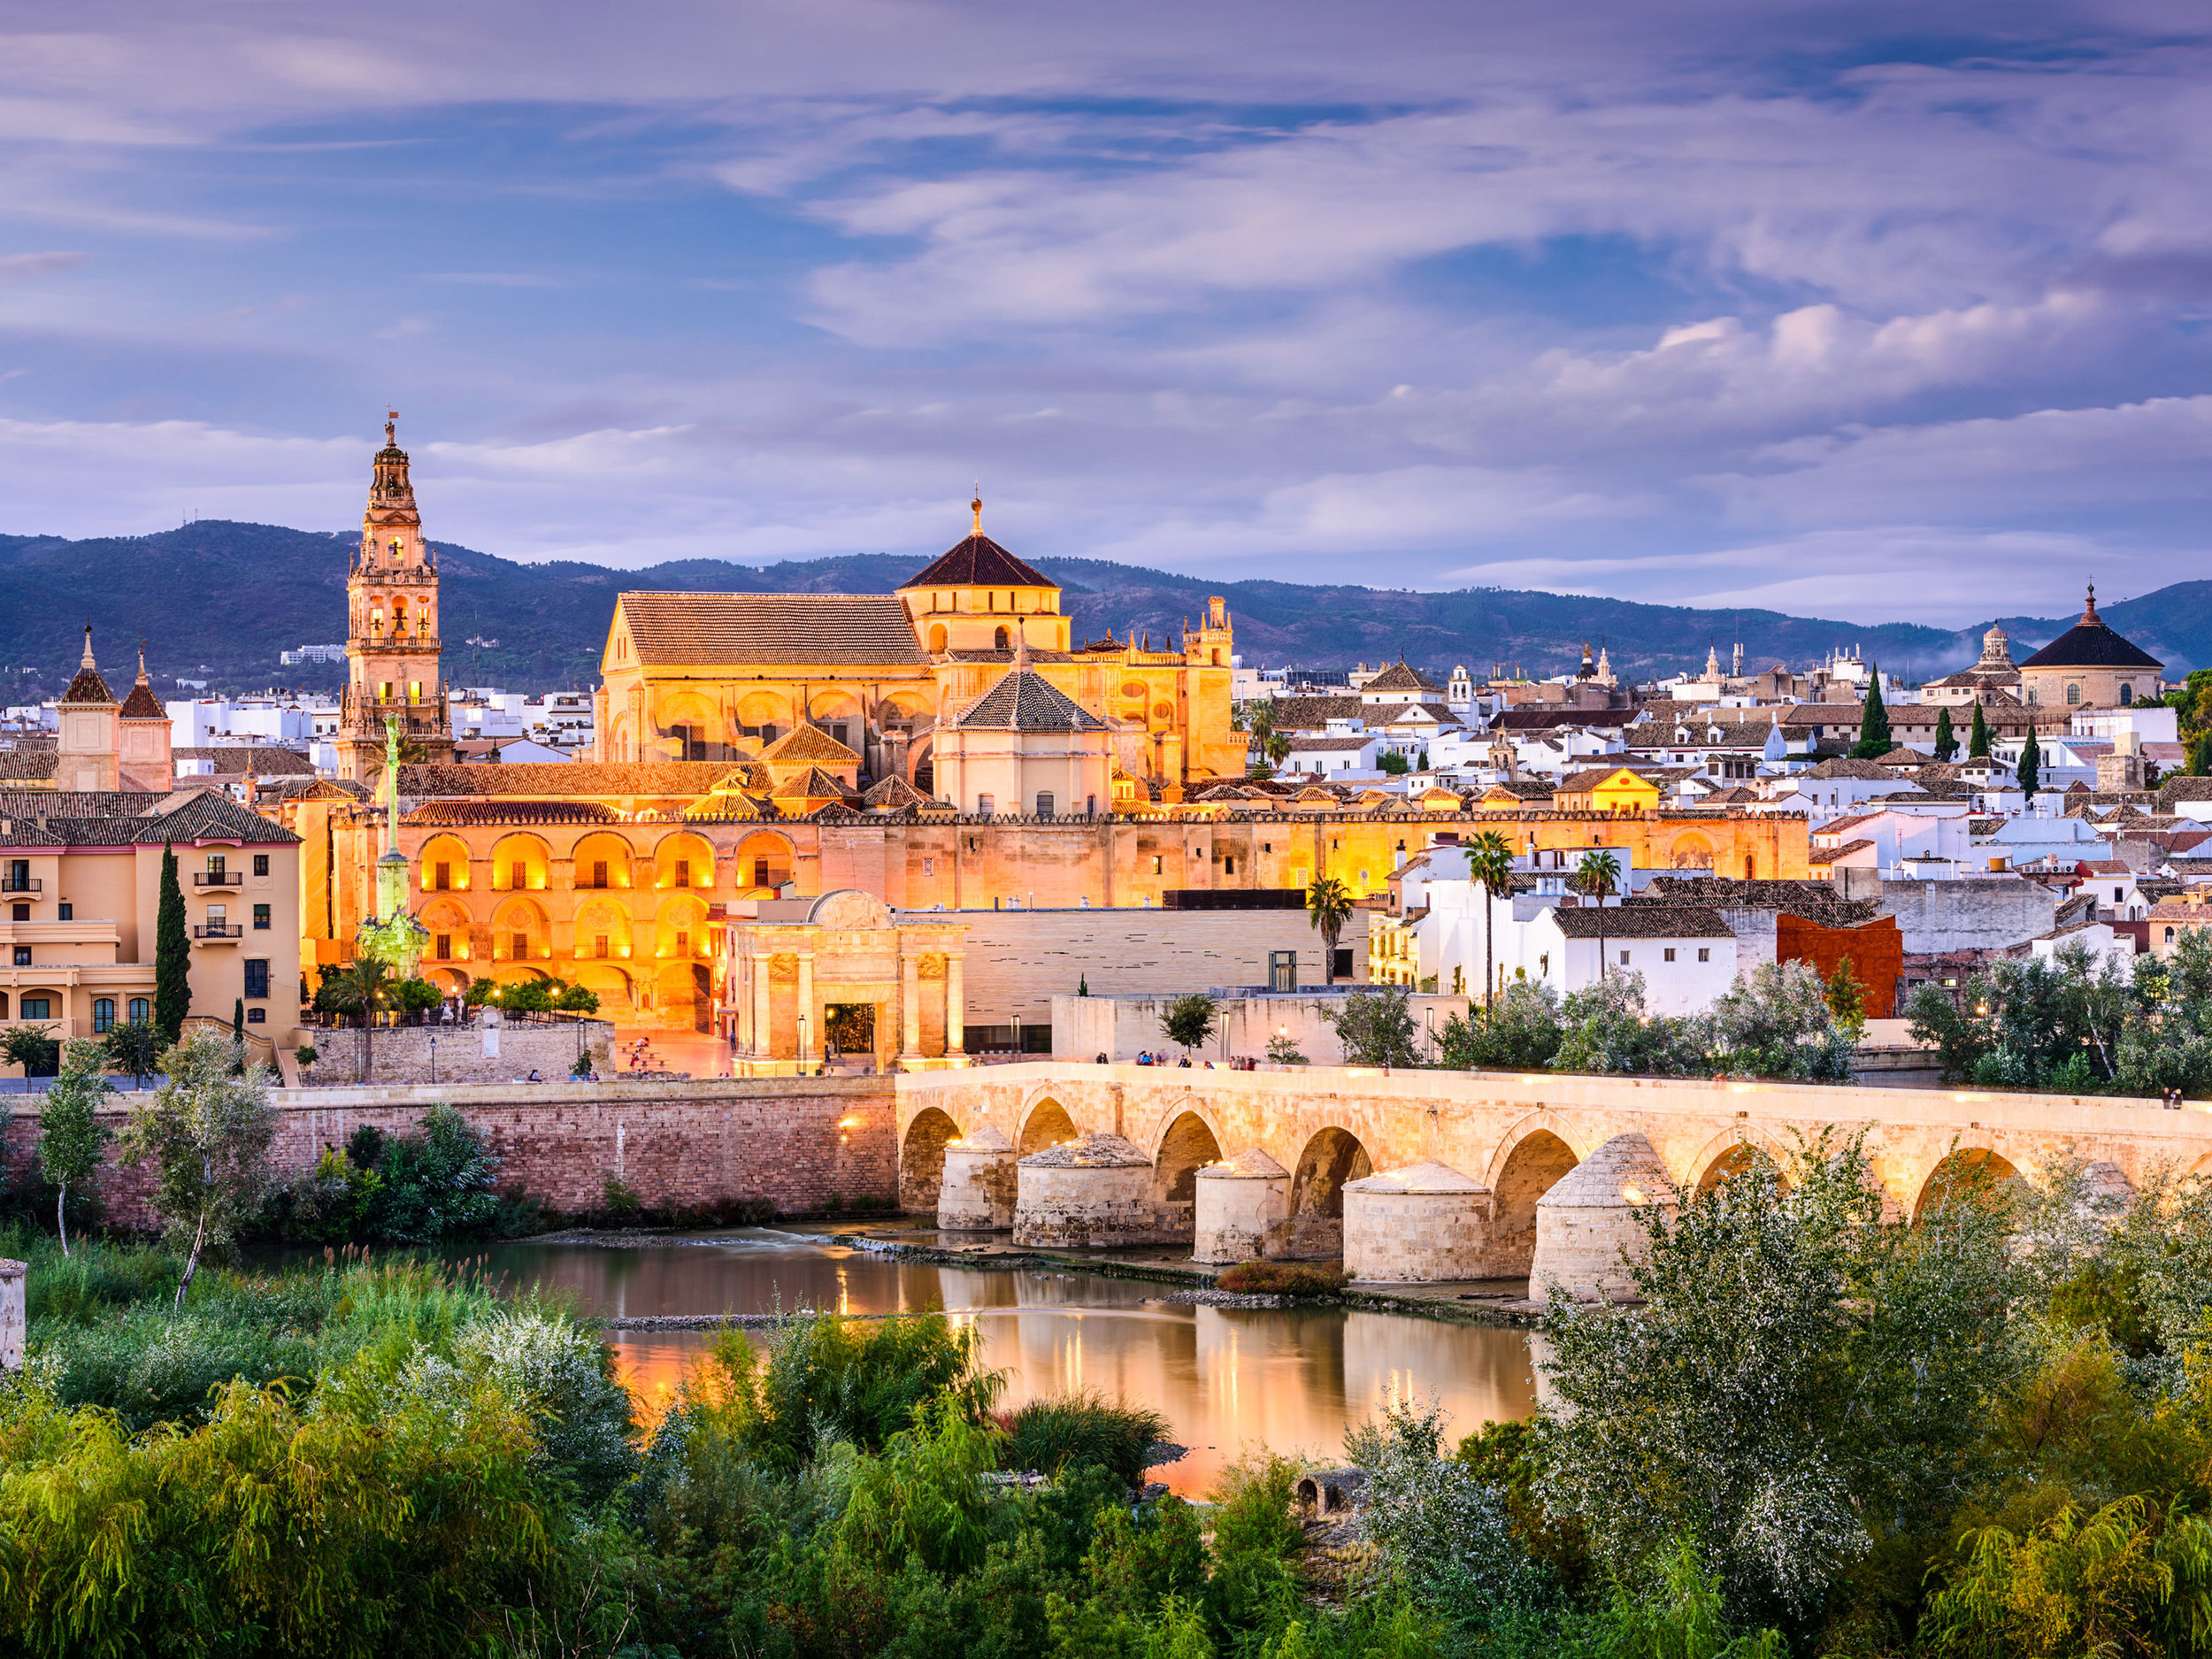 3-minute-travel-guide-Cordoba-Spain-2-1.jpg